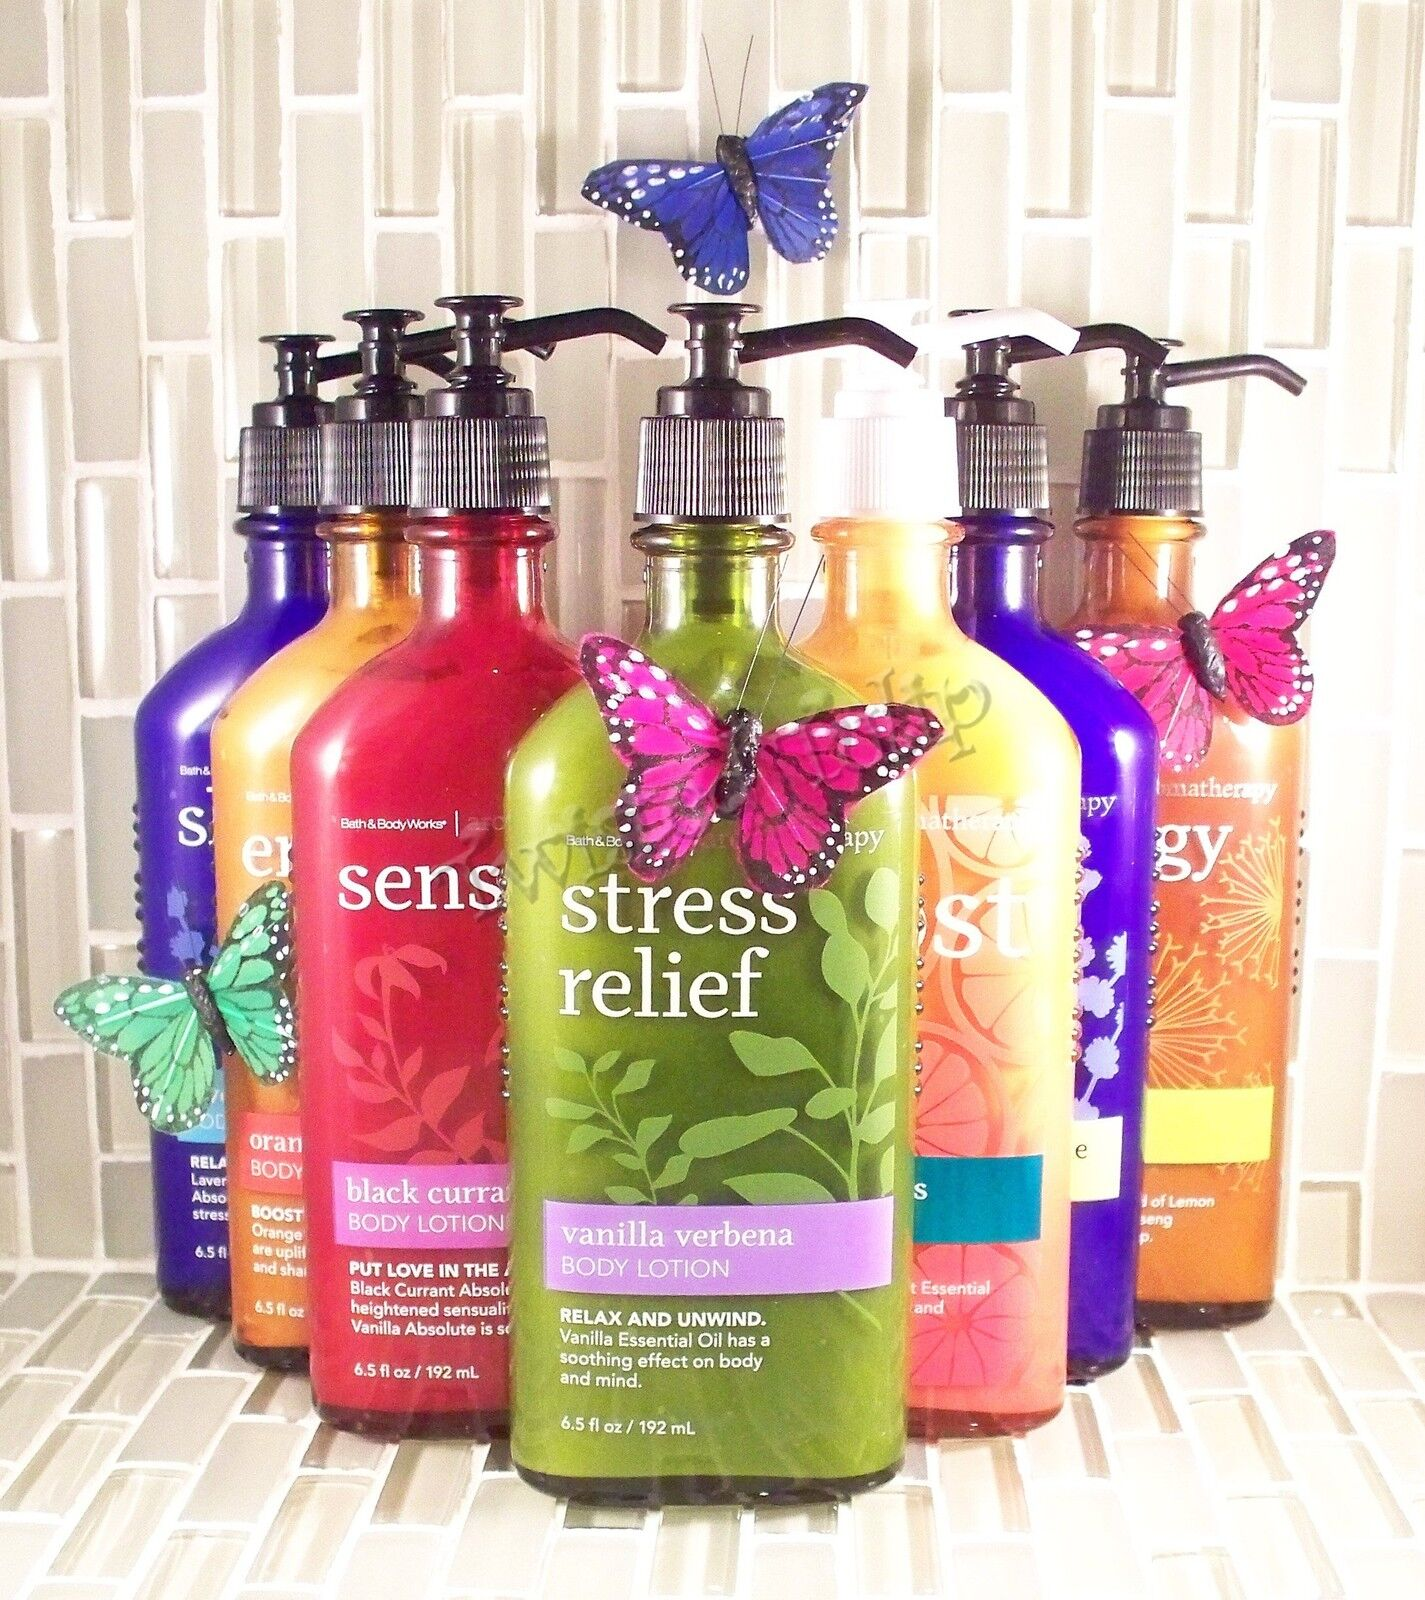 3 Bath Body Works Aromatherapy Boost Tangelo Woods Cream Bubble Foam Pure Peppermint Essential Oil Pink Lotus Lotion Ebay